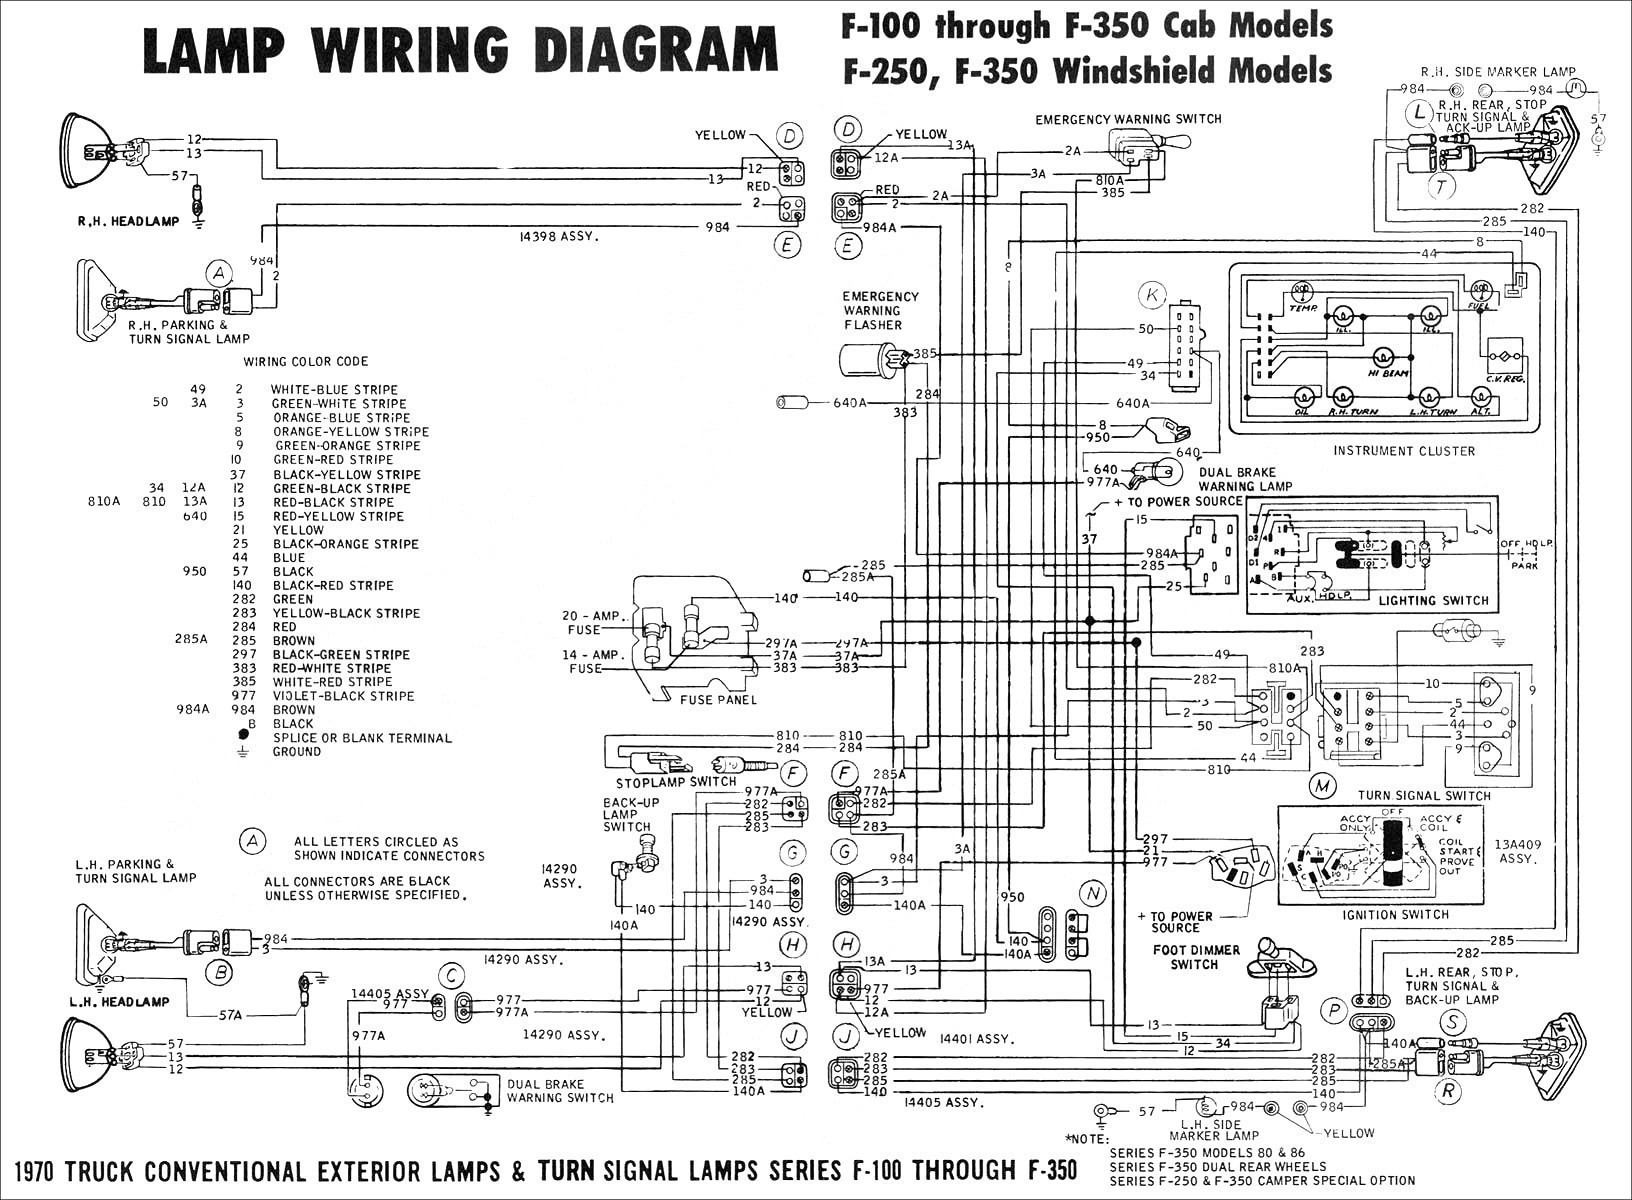 1995 ford F150 Electric Fuel Pump Wiring Schematic St 6981] 04 Jetta Fuel Pump Relay Location Free Image About Of 1995 ford F150 Electric Fuel Pump Wiring Schematic